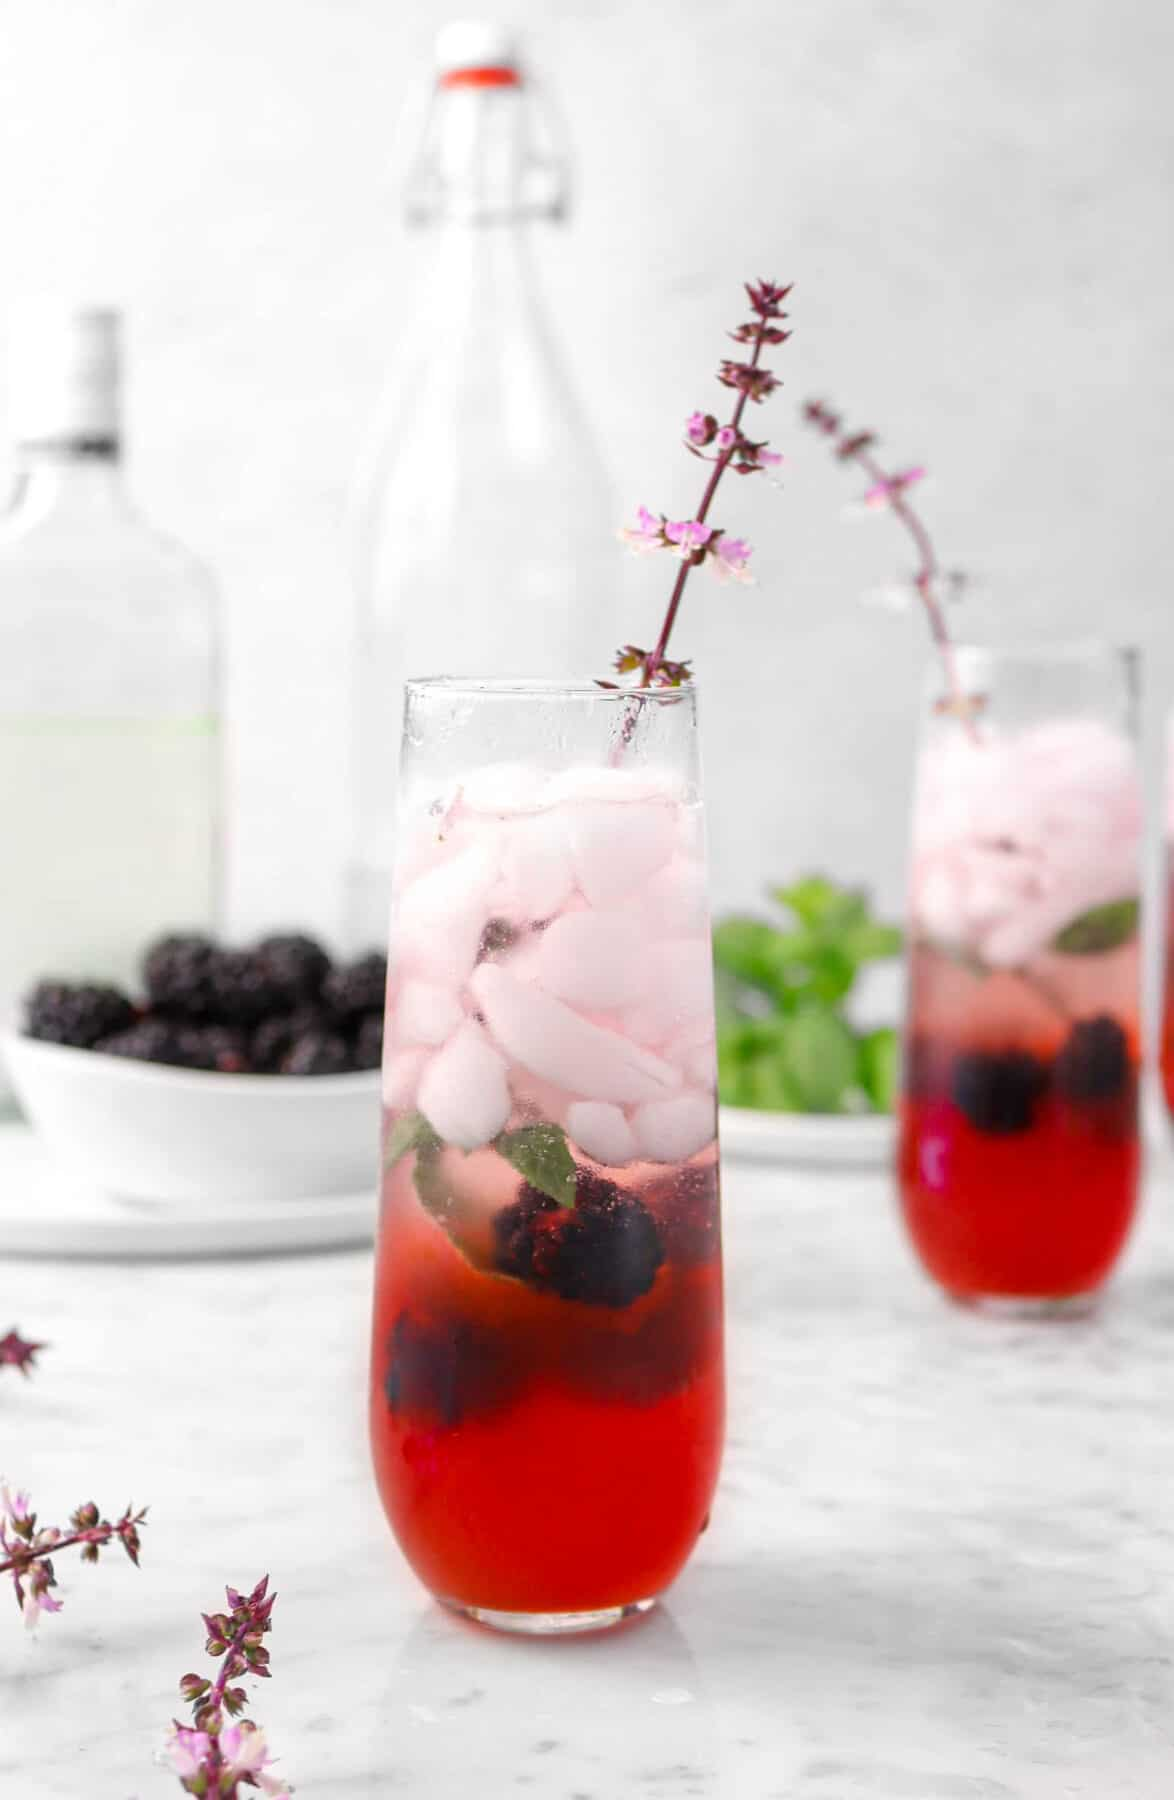 two glasses of blackberry mojito with flowers, blackberries, and mint